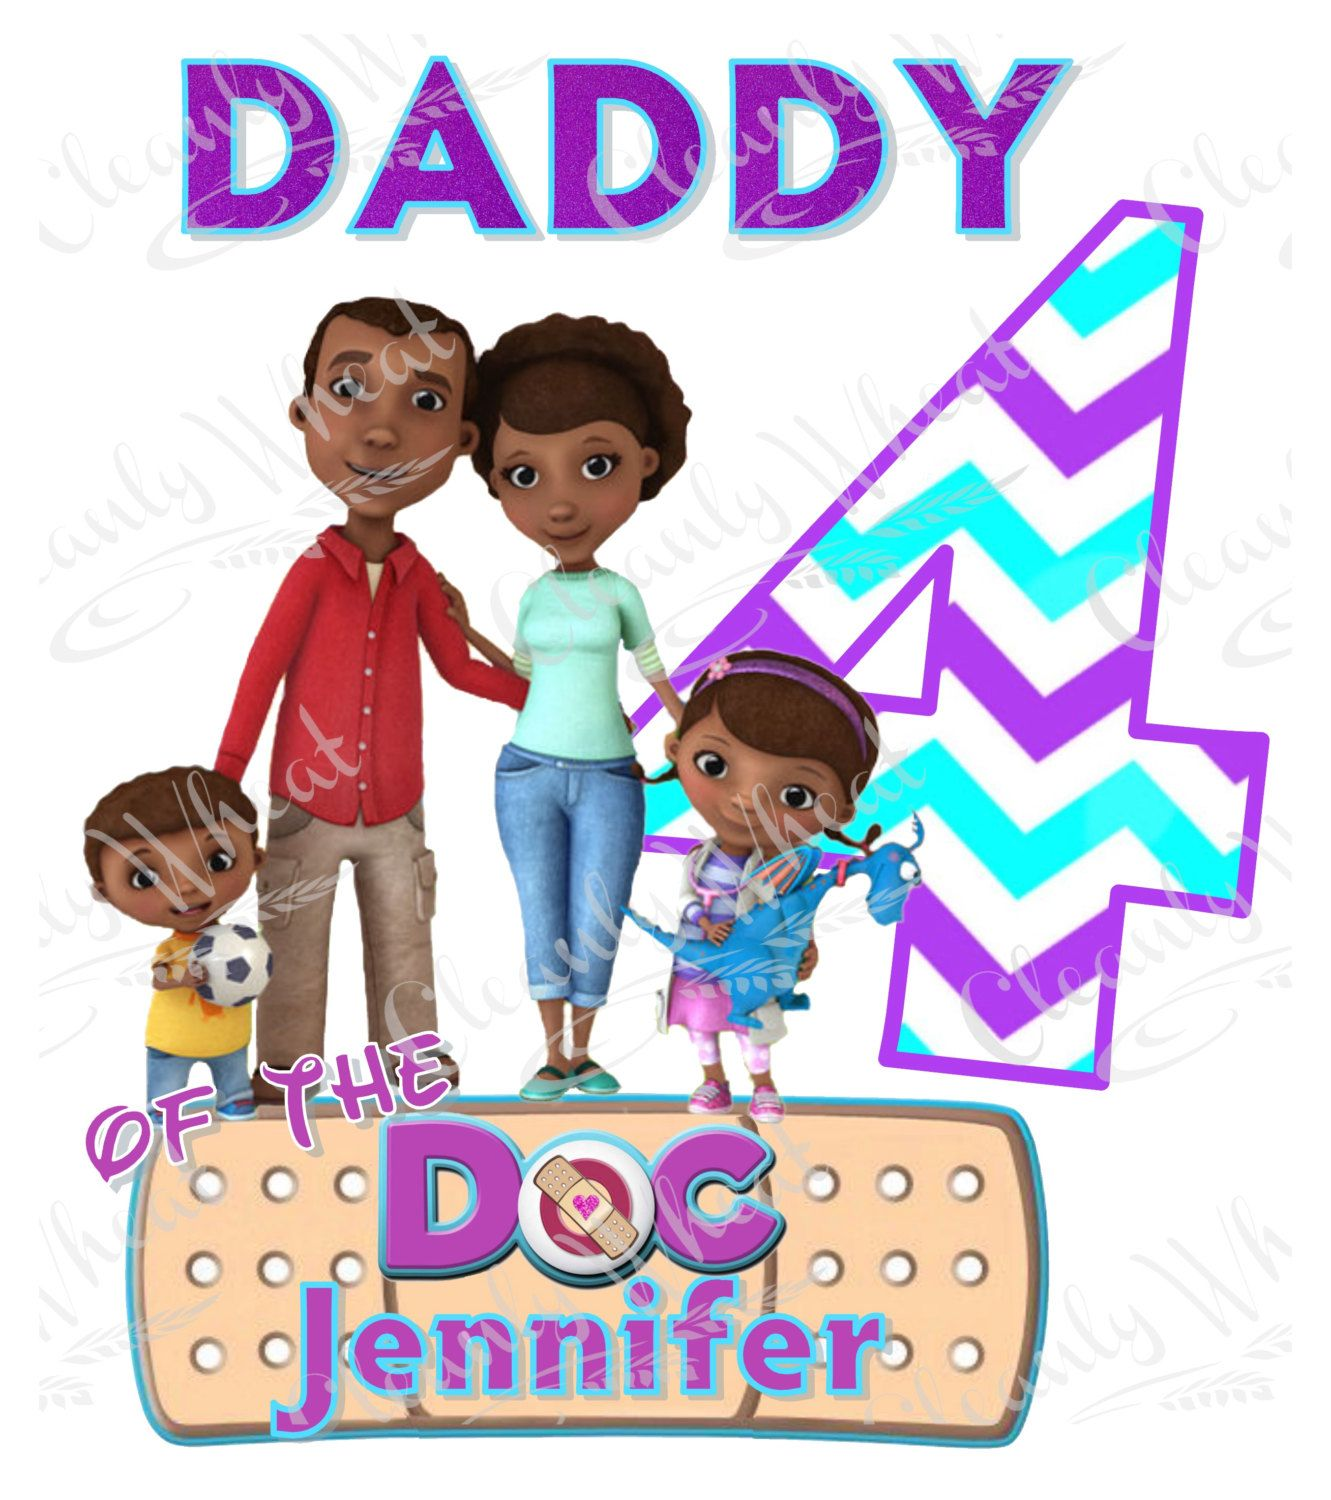 T-shirt Disney Doc Mcstuffins Iron On Transfer Printable Dad of the Birthday Girl digital download Personalized, Doc Mcstuffins shirt by CleanlyWheat on Etsy